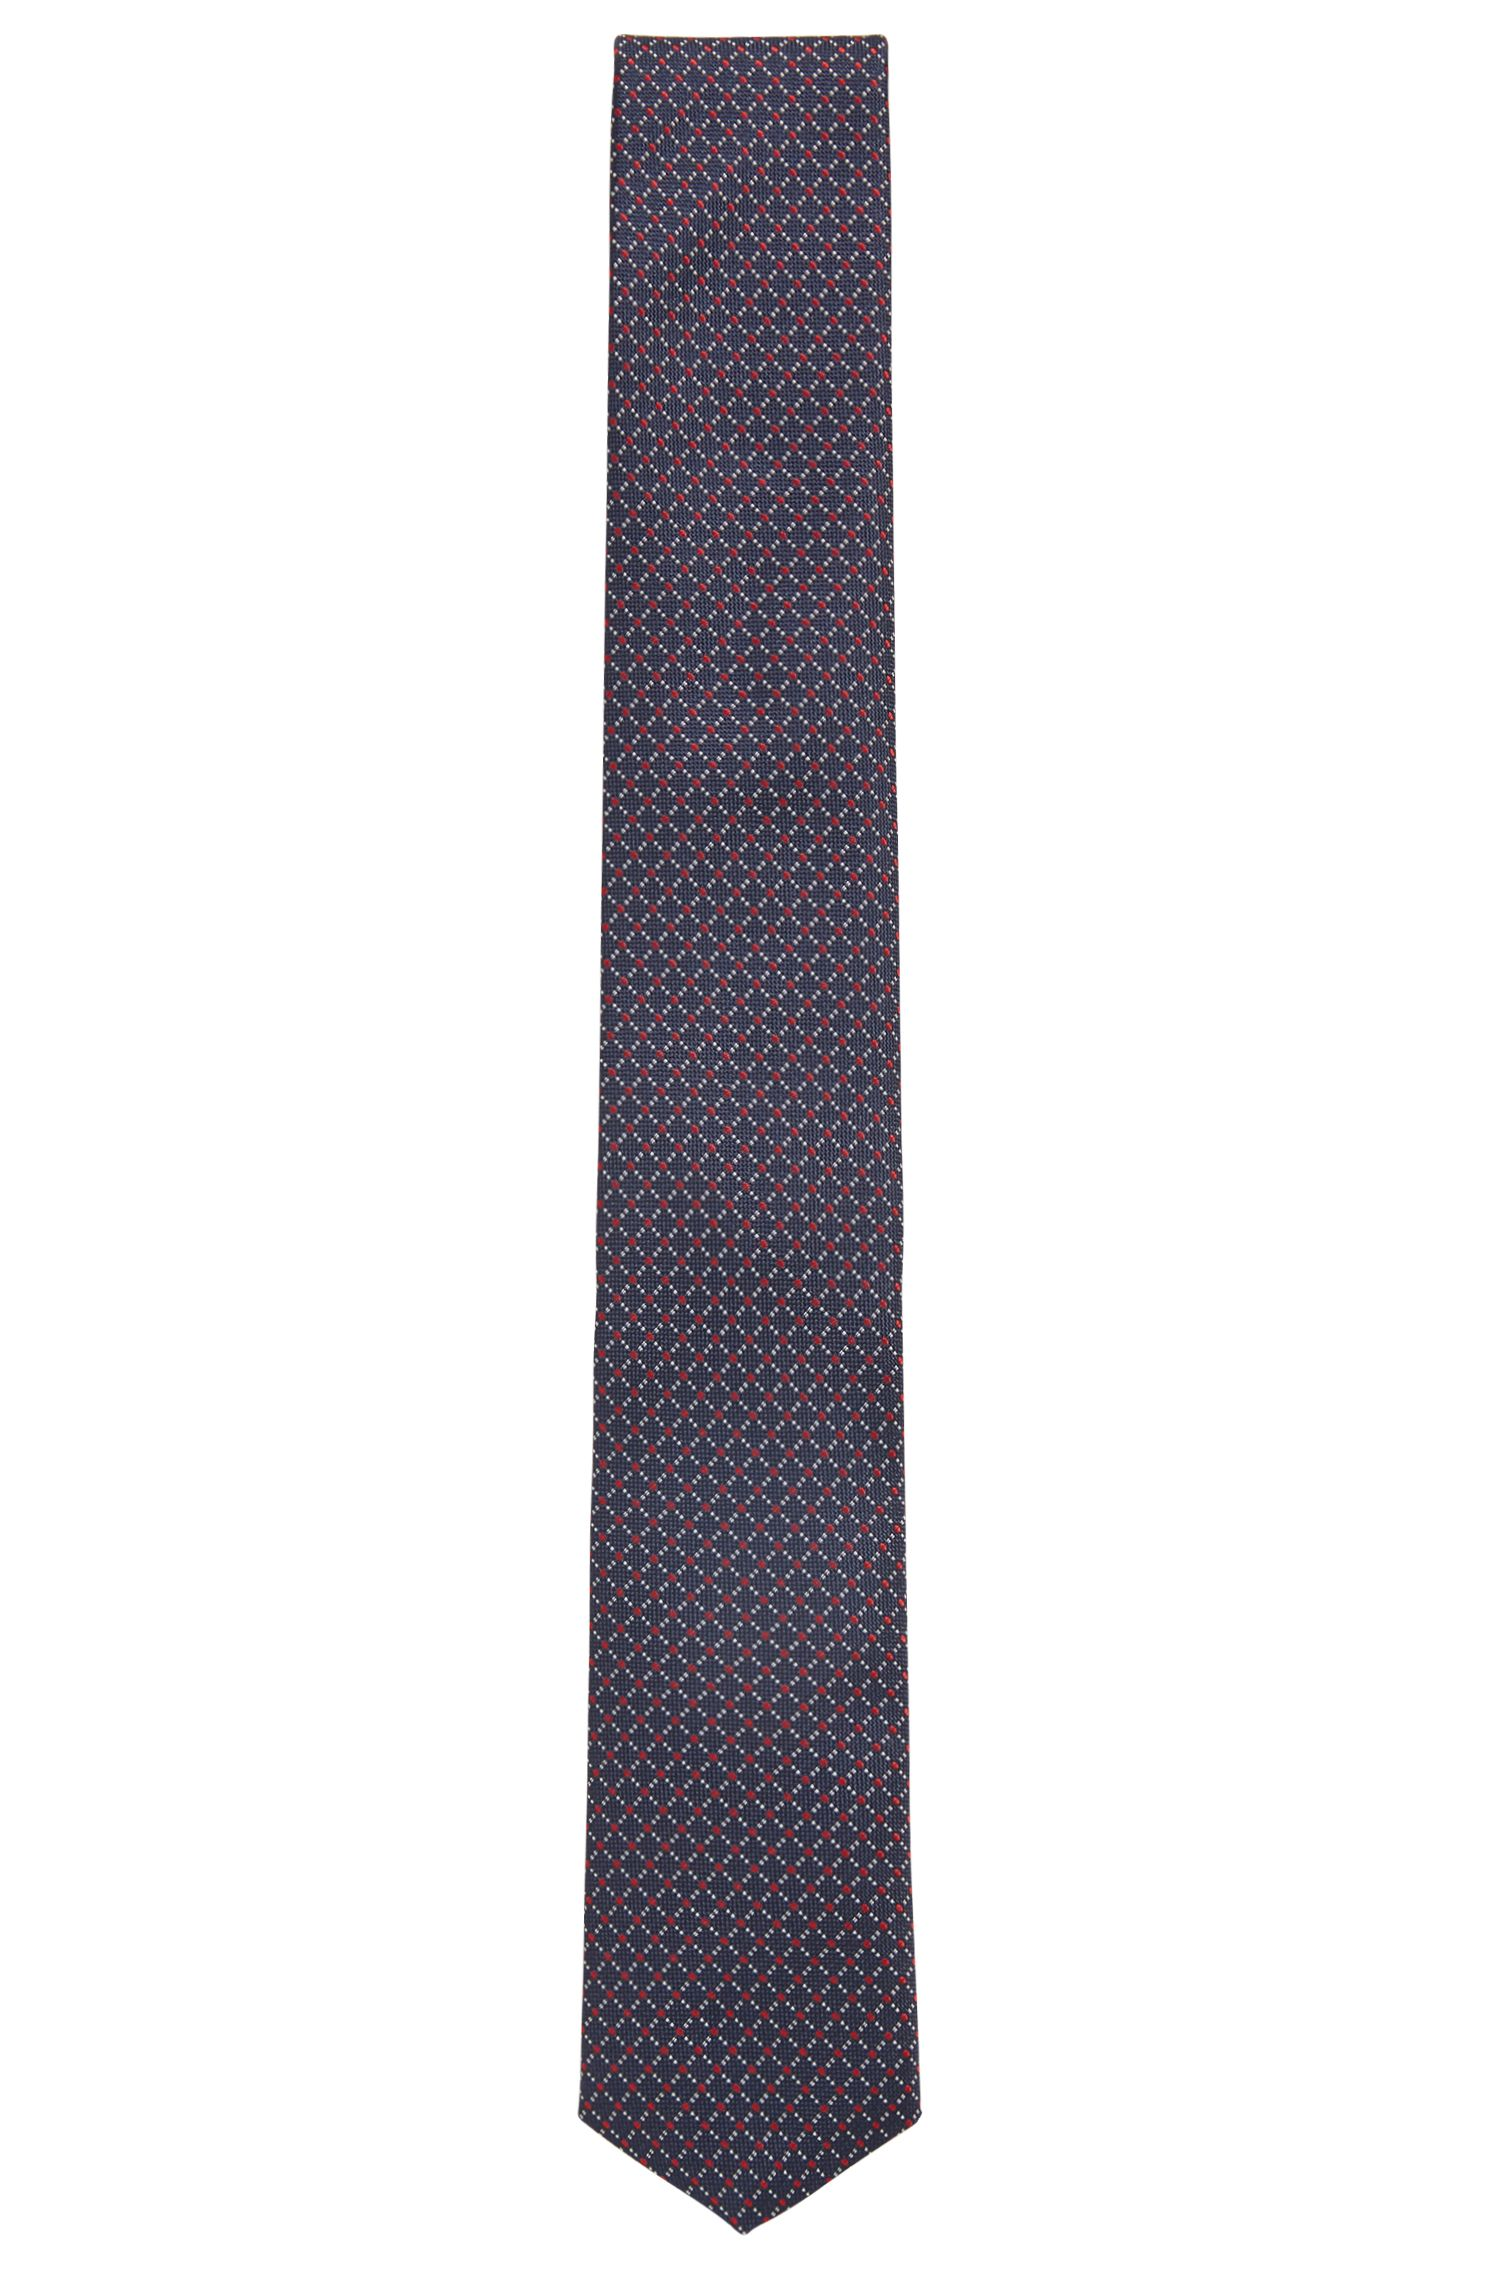 Travel Line water-repellent tie in patterned silk jacquard